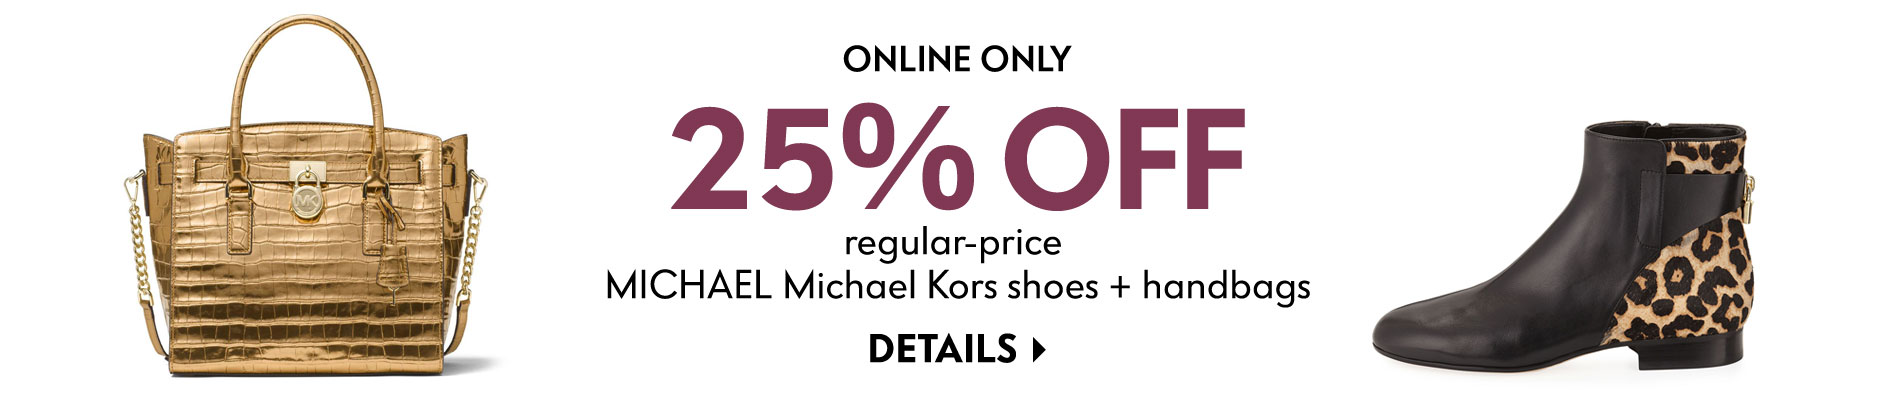 Online only - 25% Off regular-price Michael michael kors shoes + handbags